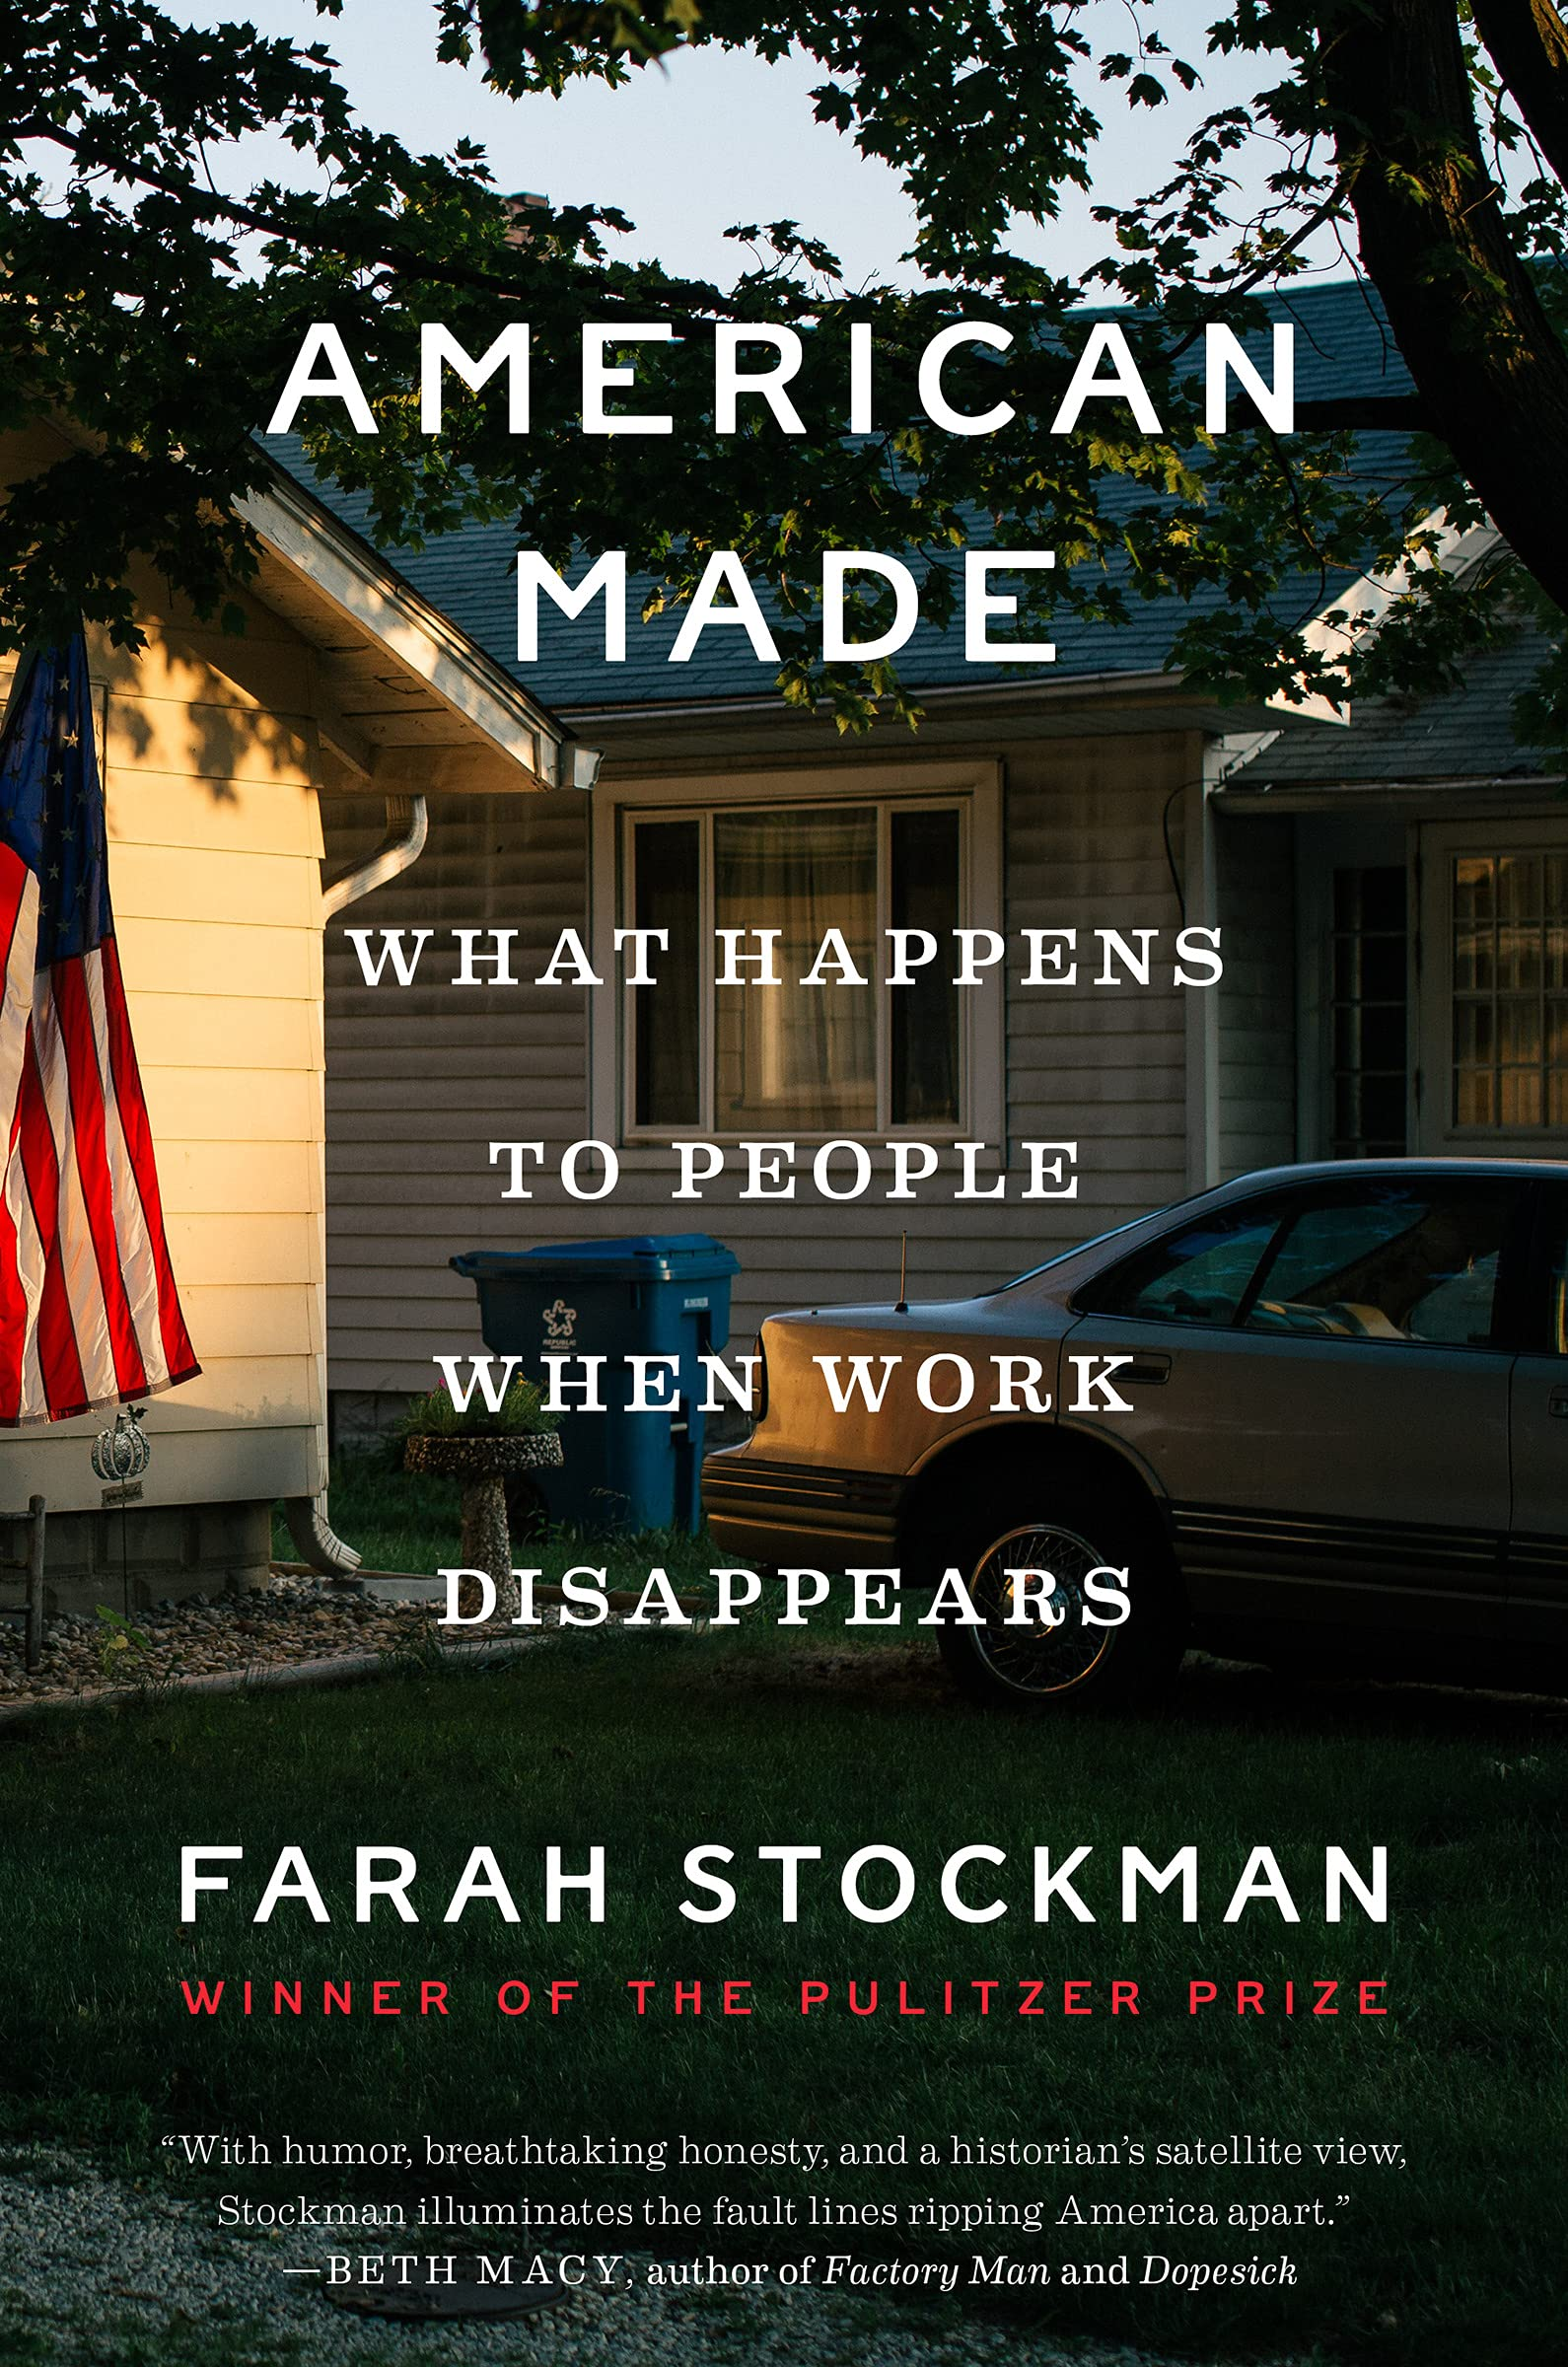 American Made: What Happens to People When Work Disappears by Farah Stockman